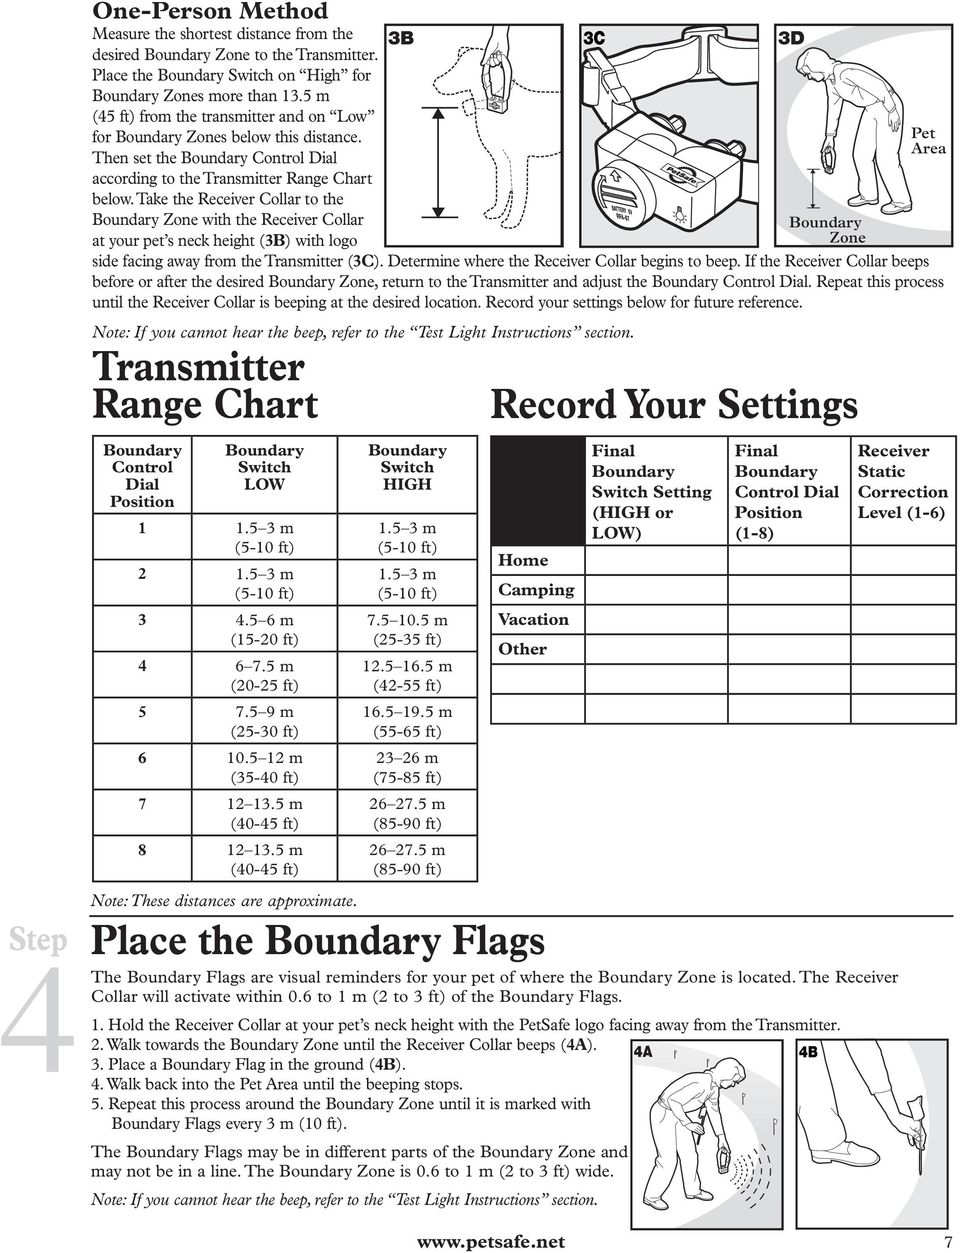 Then set the Boundary Control Dial according to the Transmitter Range Chart below.